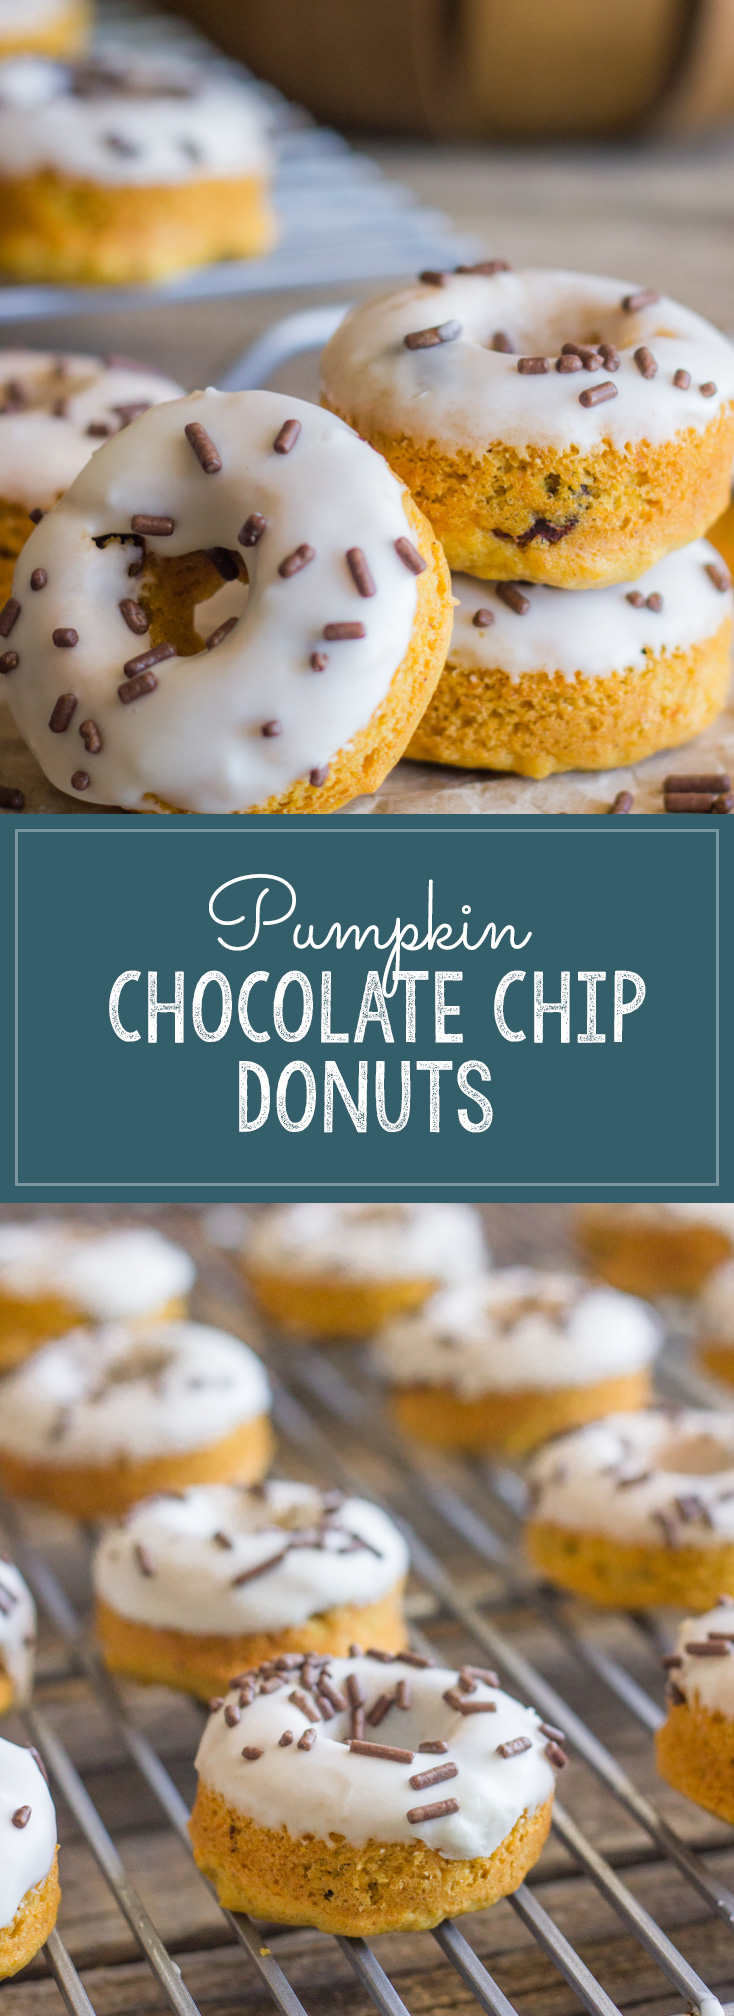 Mini Baked Pumpkin Chocolate Chip Donuts - perfectly bite-sized and will have you ready for Fall in no time!